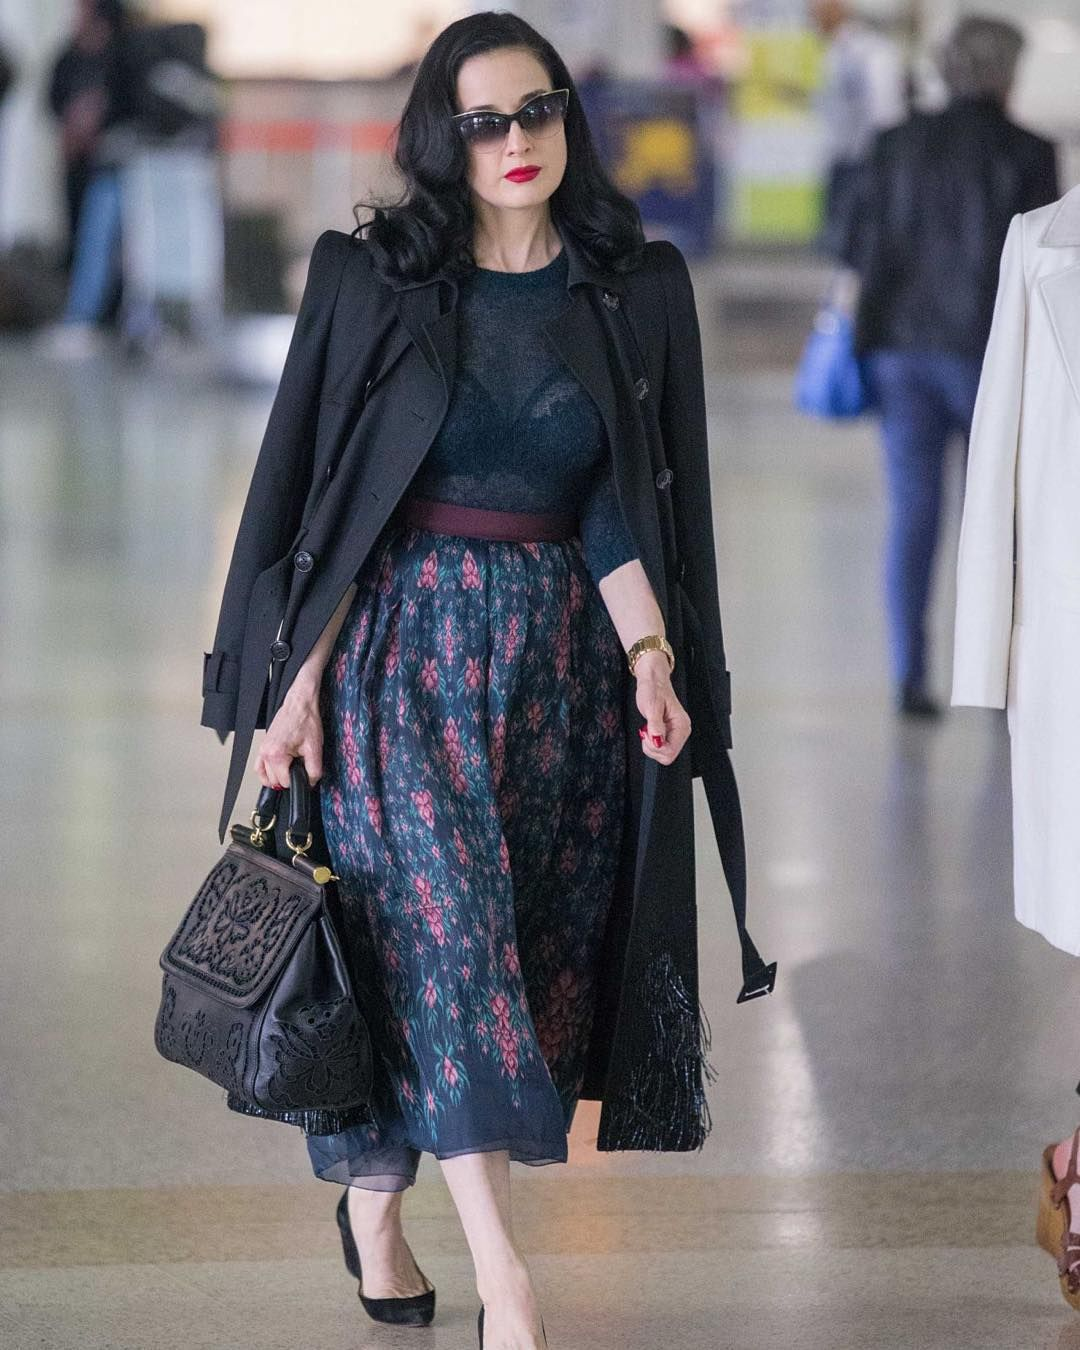 27cb4dfa05e1 Gorgeous Dita Von Teese in Ulyana Sergeenko skirt and pullover at Melbourne  Airport  ulyanasergeenko  ditavonteese  diva  beauty  icon  style  melbourne  ...